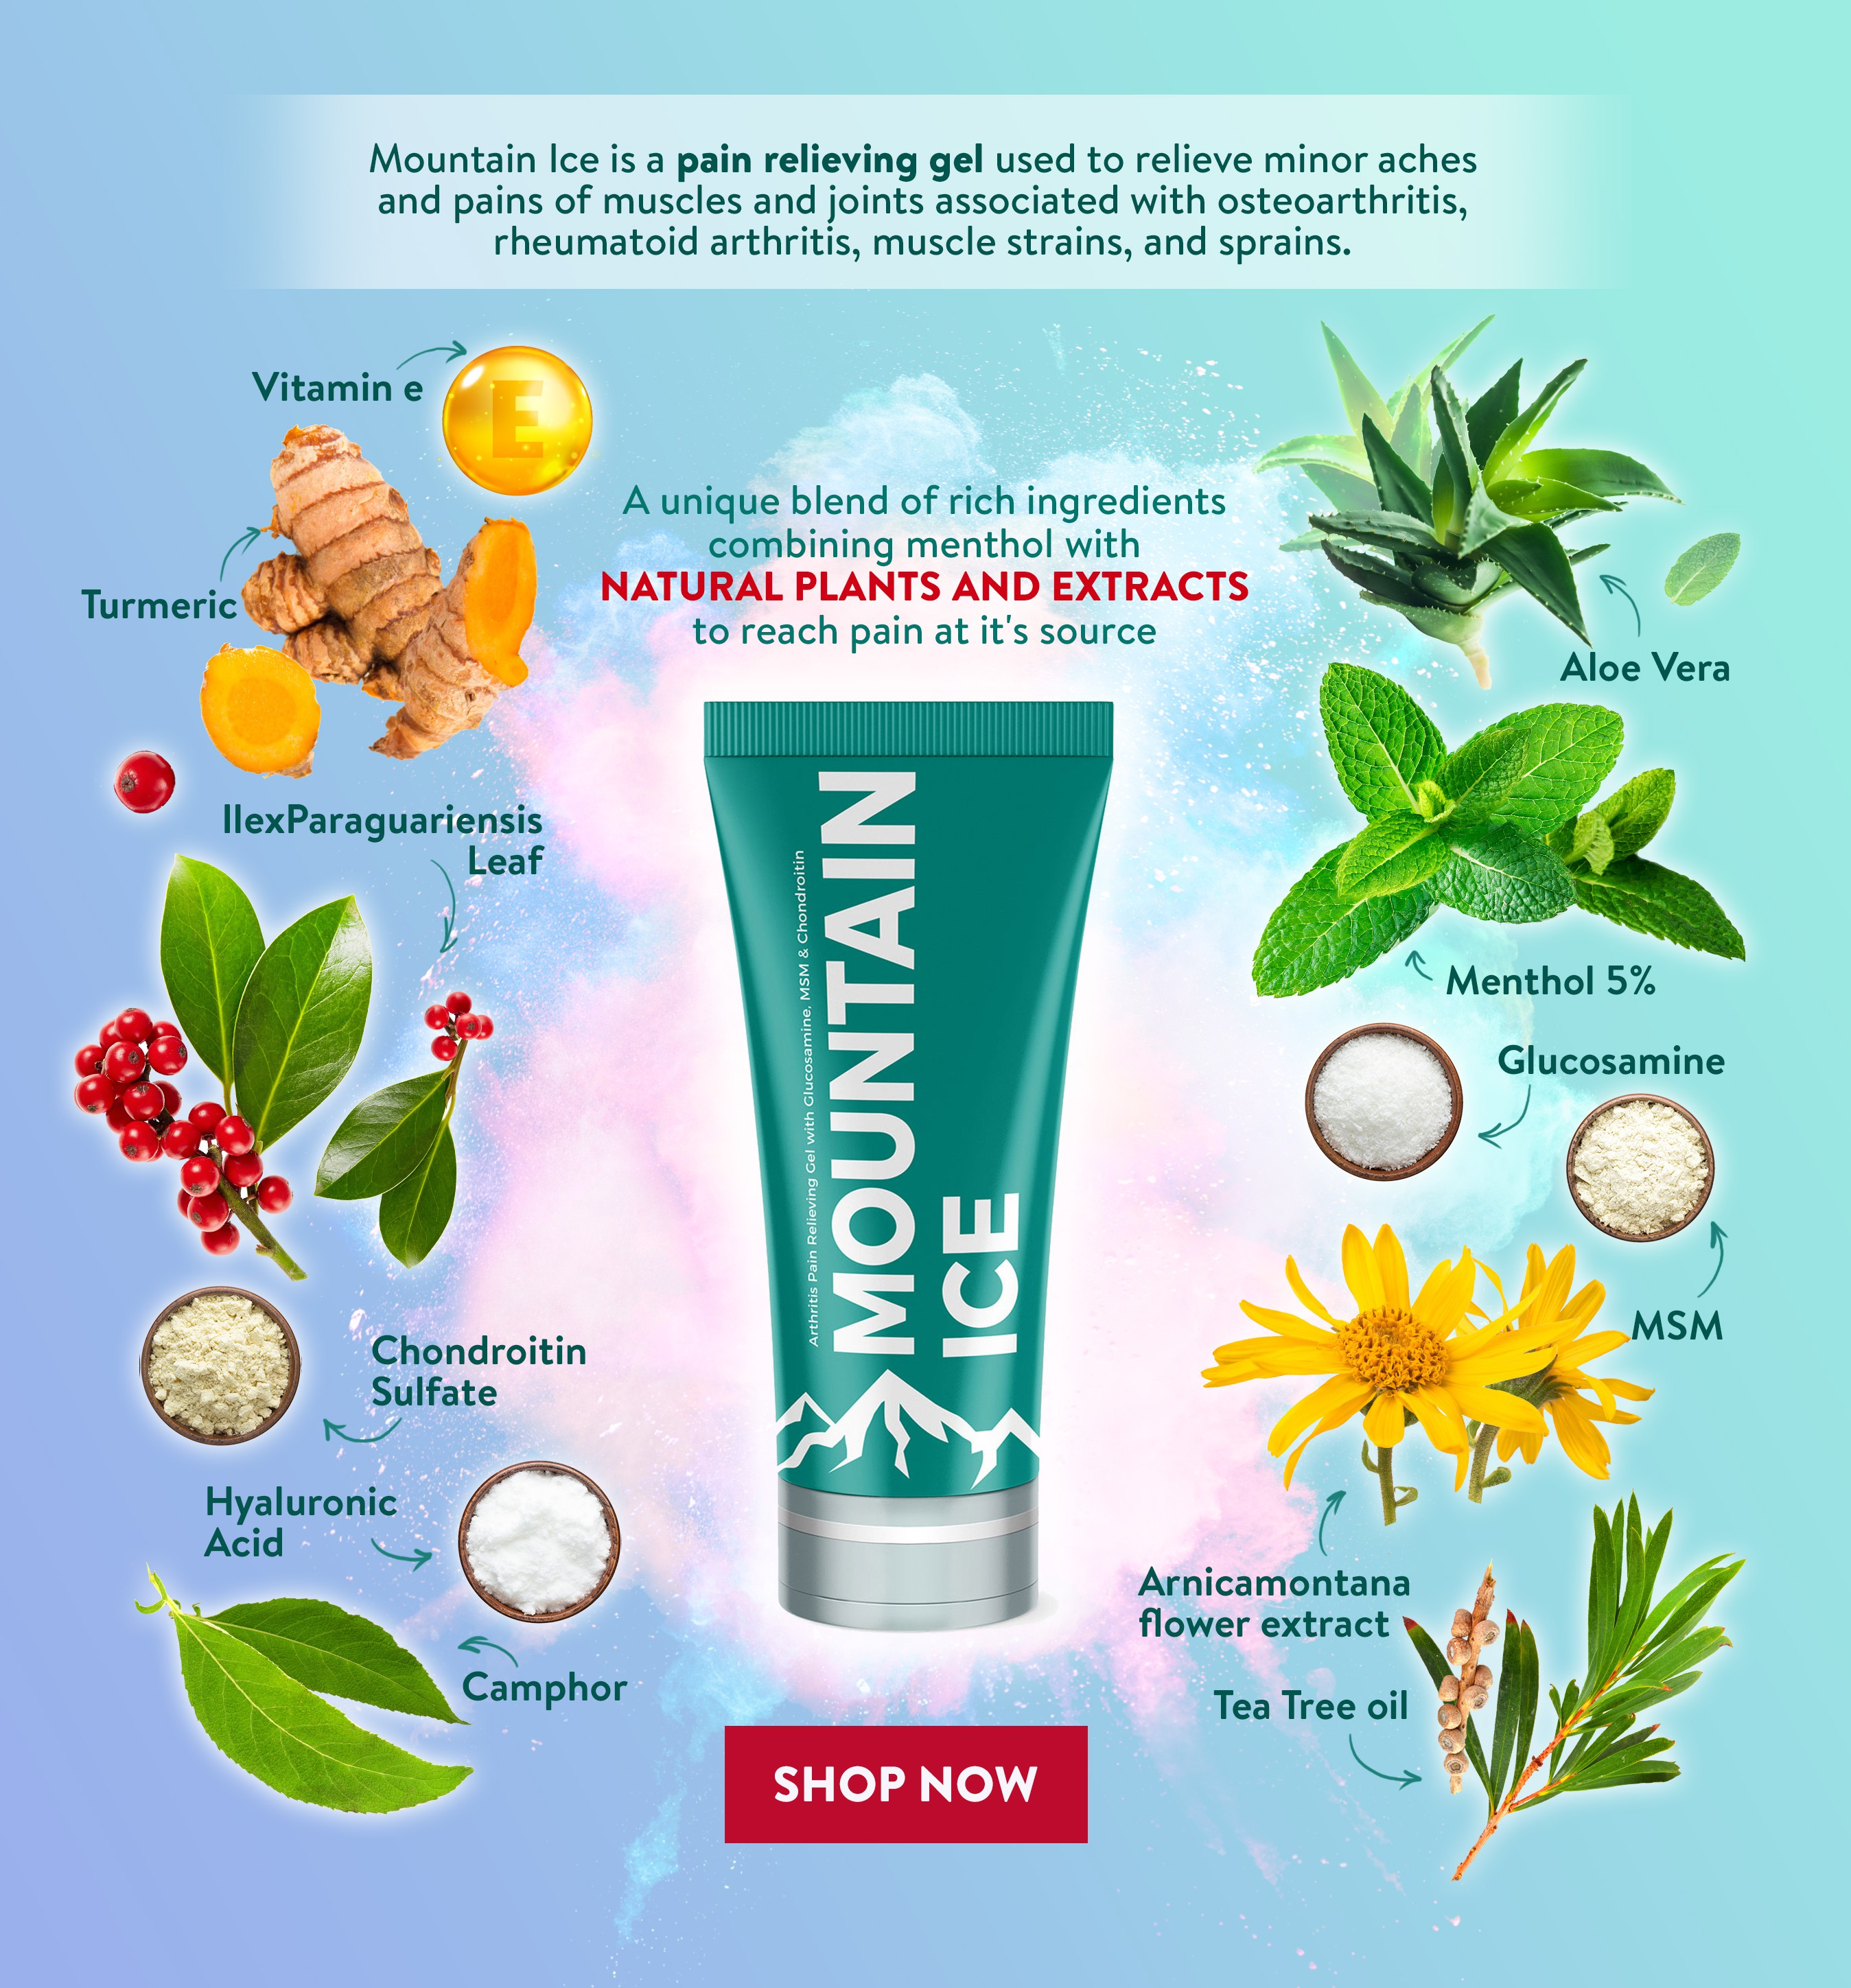 Create an Ad for my product Mountain Ice Showing colorful ingredients in the formula